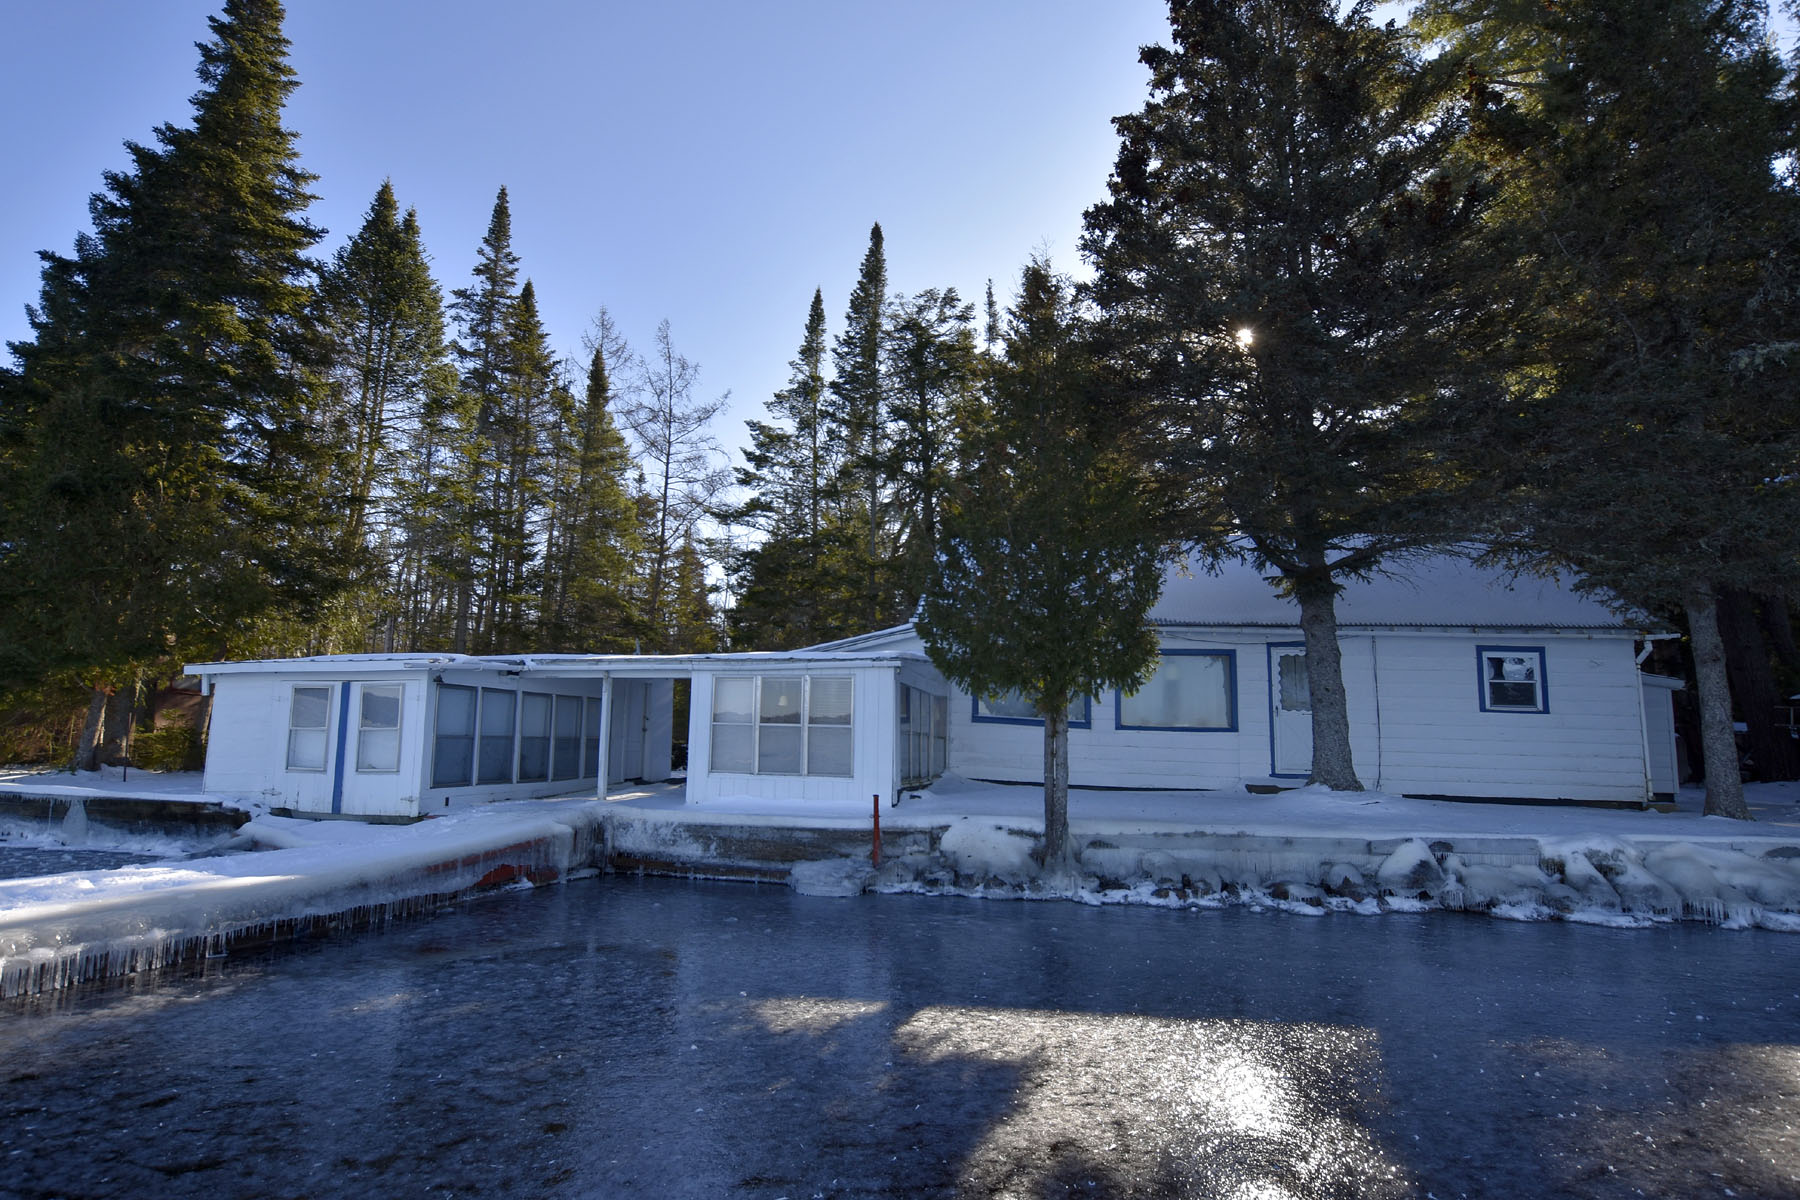 Single Family Homes for Active at RAQUETTE LAKE WATERFRONT! 159 Lakeshore Dr. Raquette Lake, New York 13436 United States